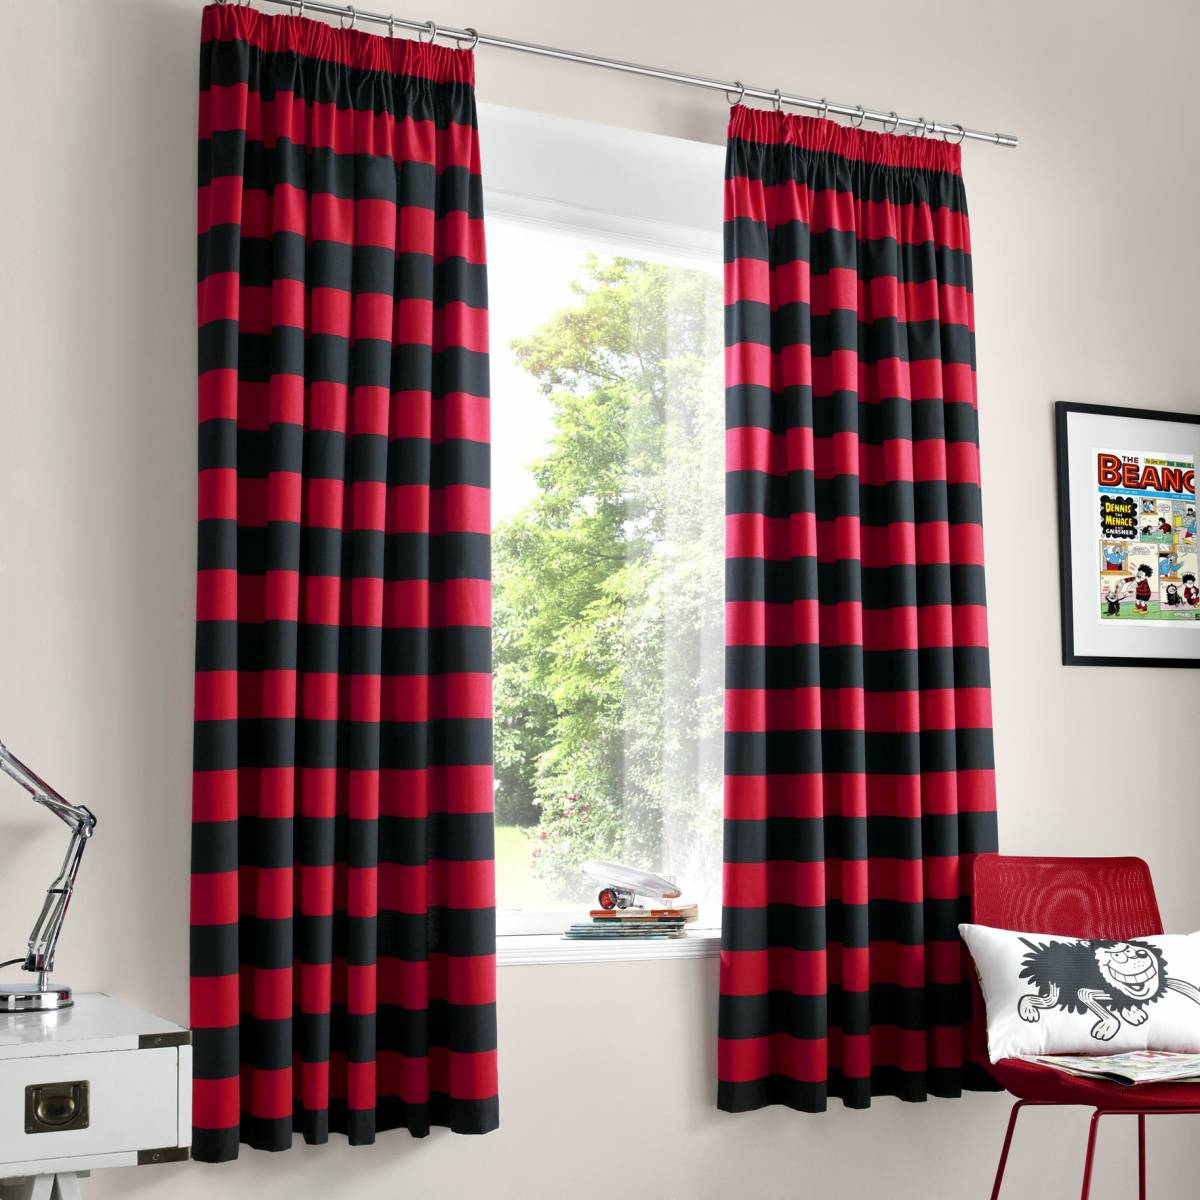 1361300748-45781600 20+ Hottest Curtain Designs for 2019